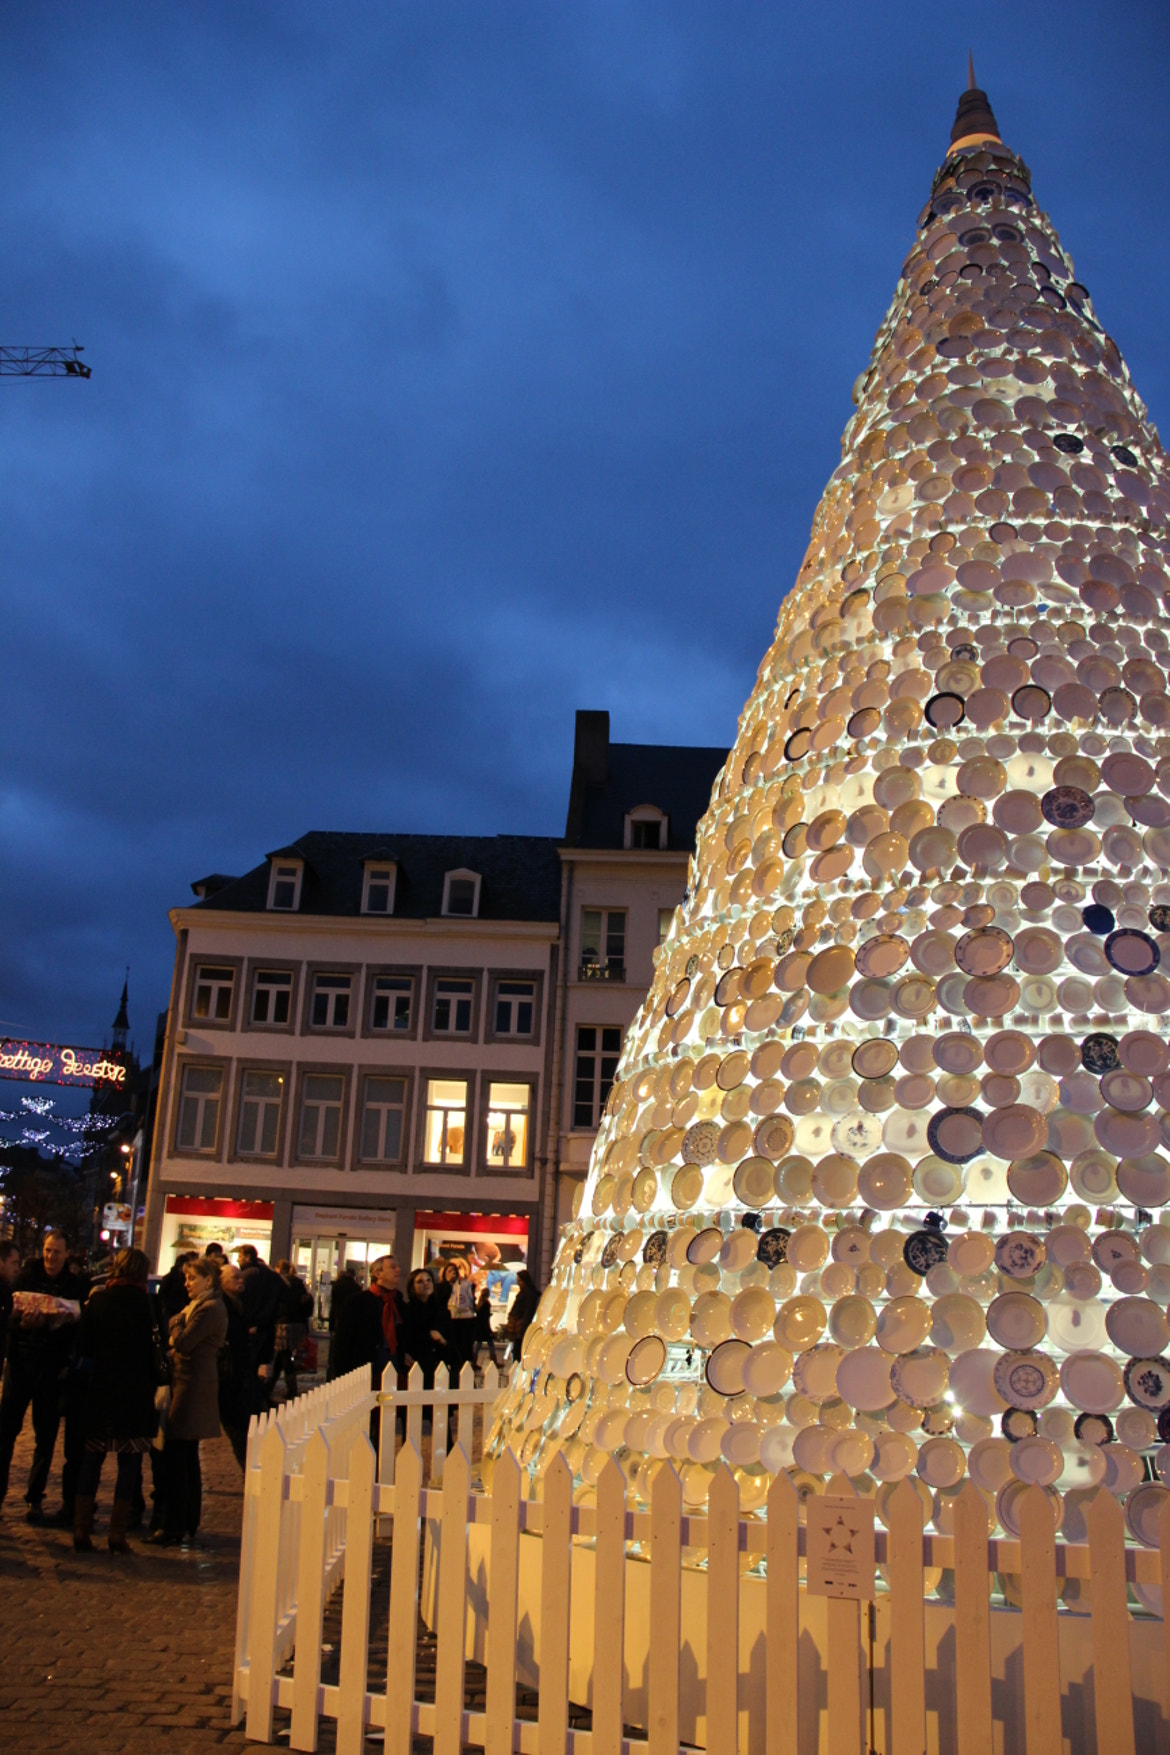 Photograph Christmas tree with a difference by Katja Sen on 500px